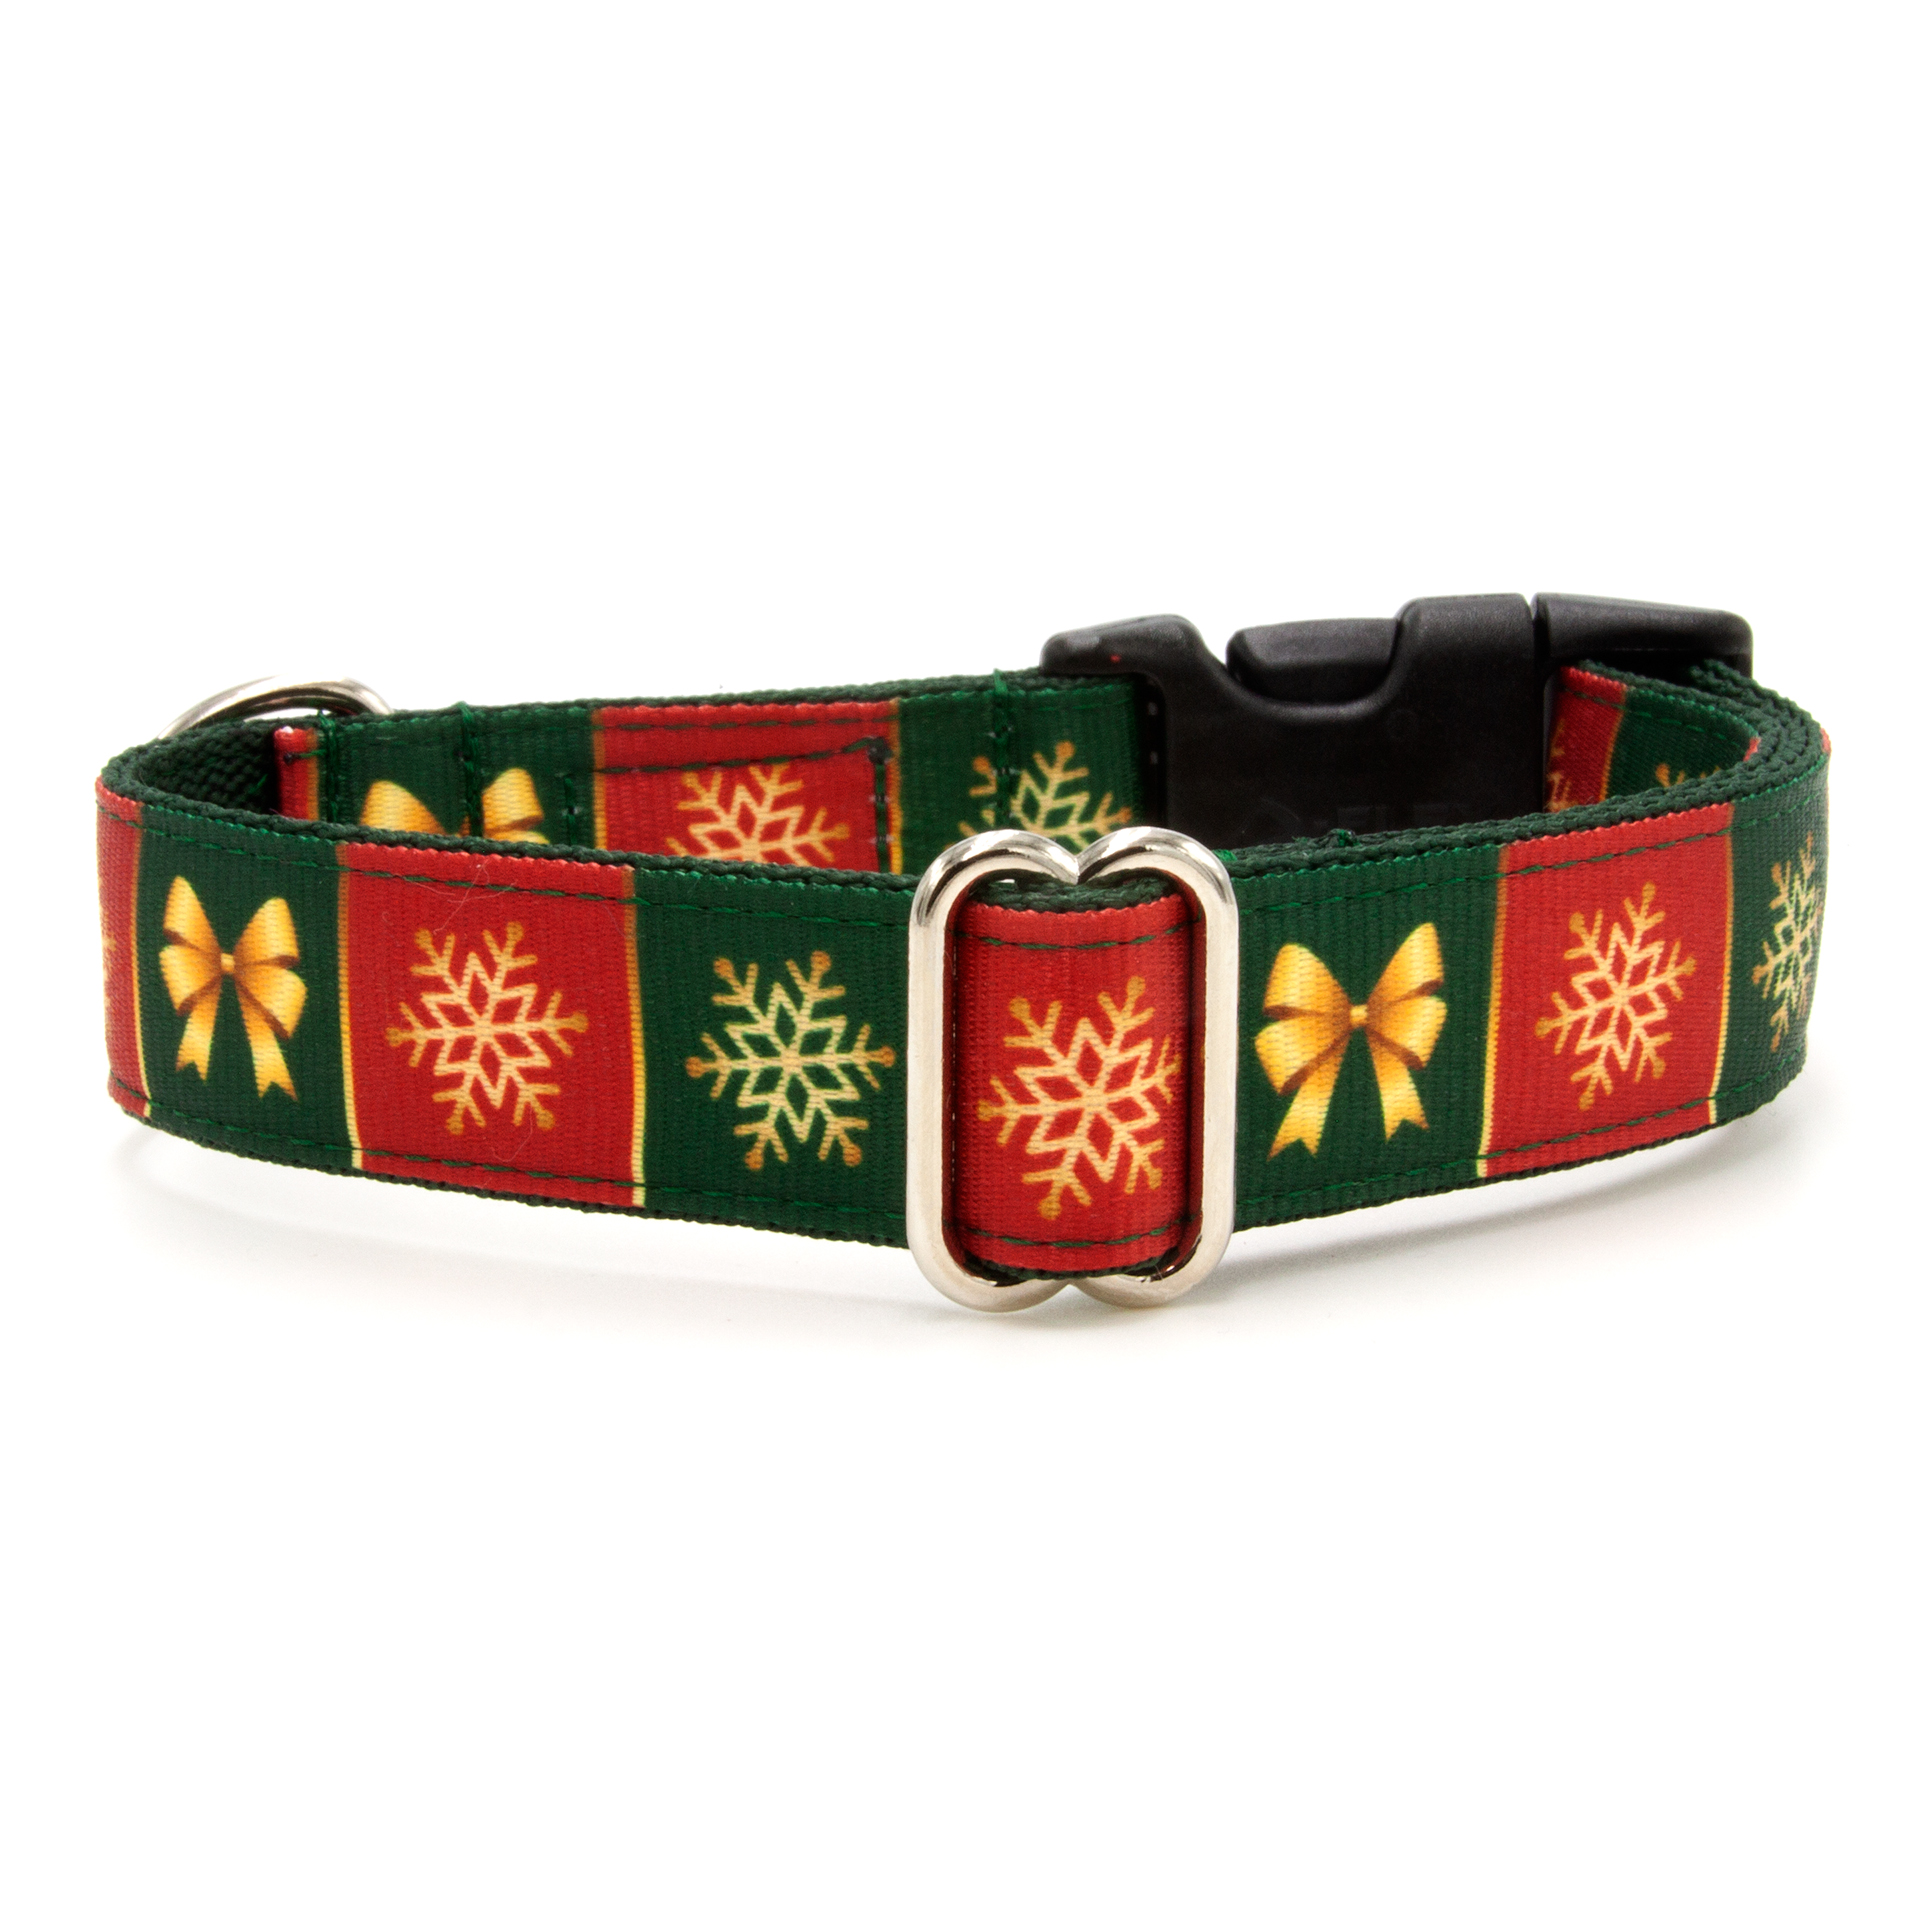 Occasion dog collar